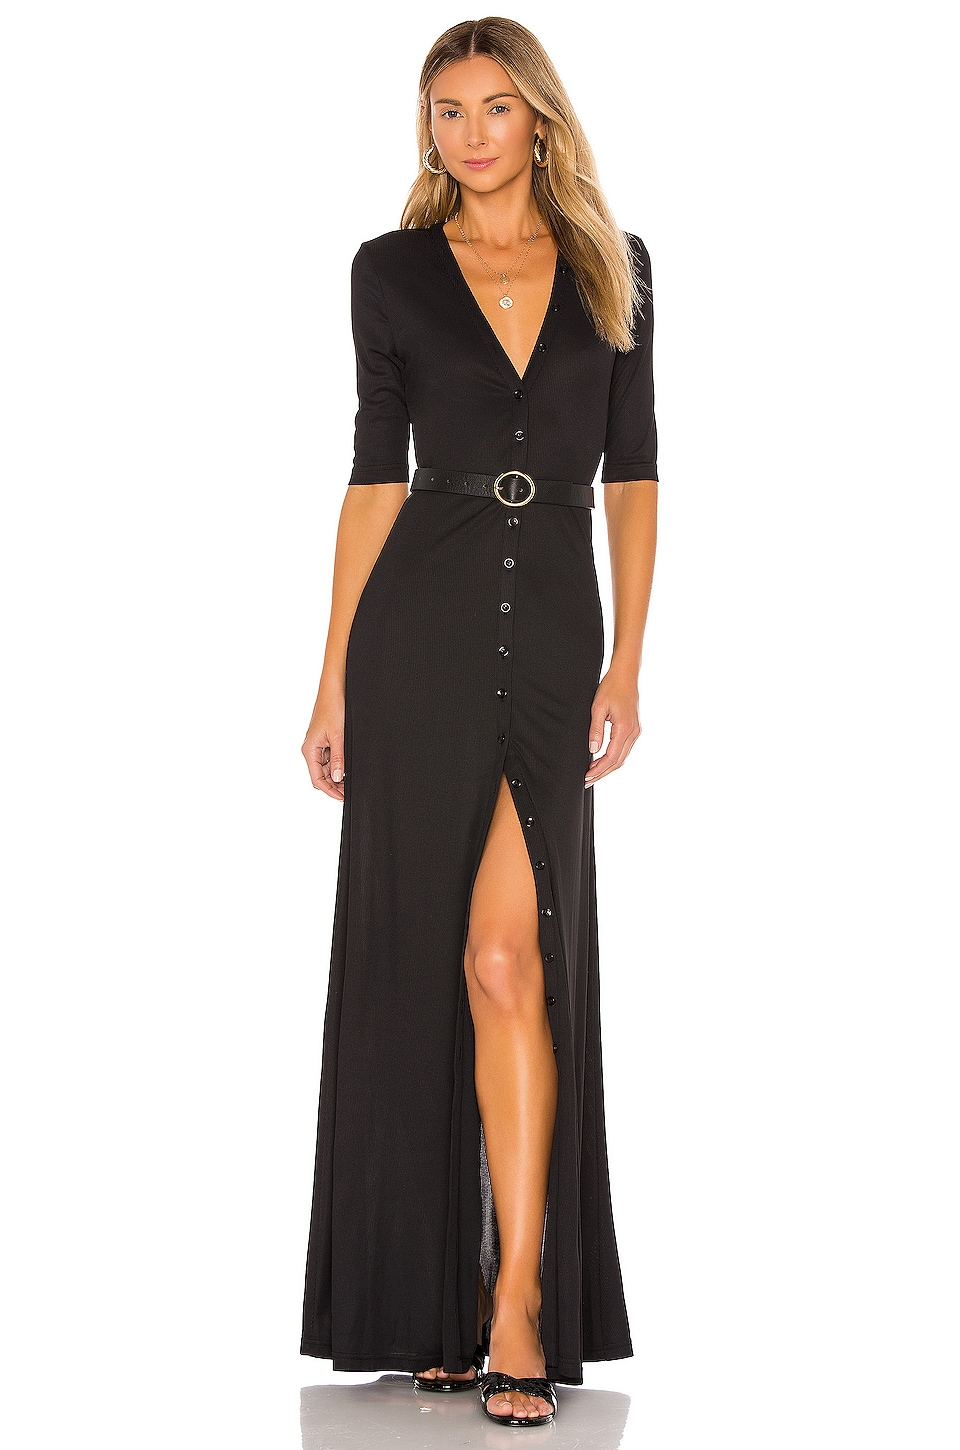 The Esperanza Maxi Dress             L'Academie                                                                                                       CA$ 226.98 5